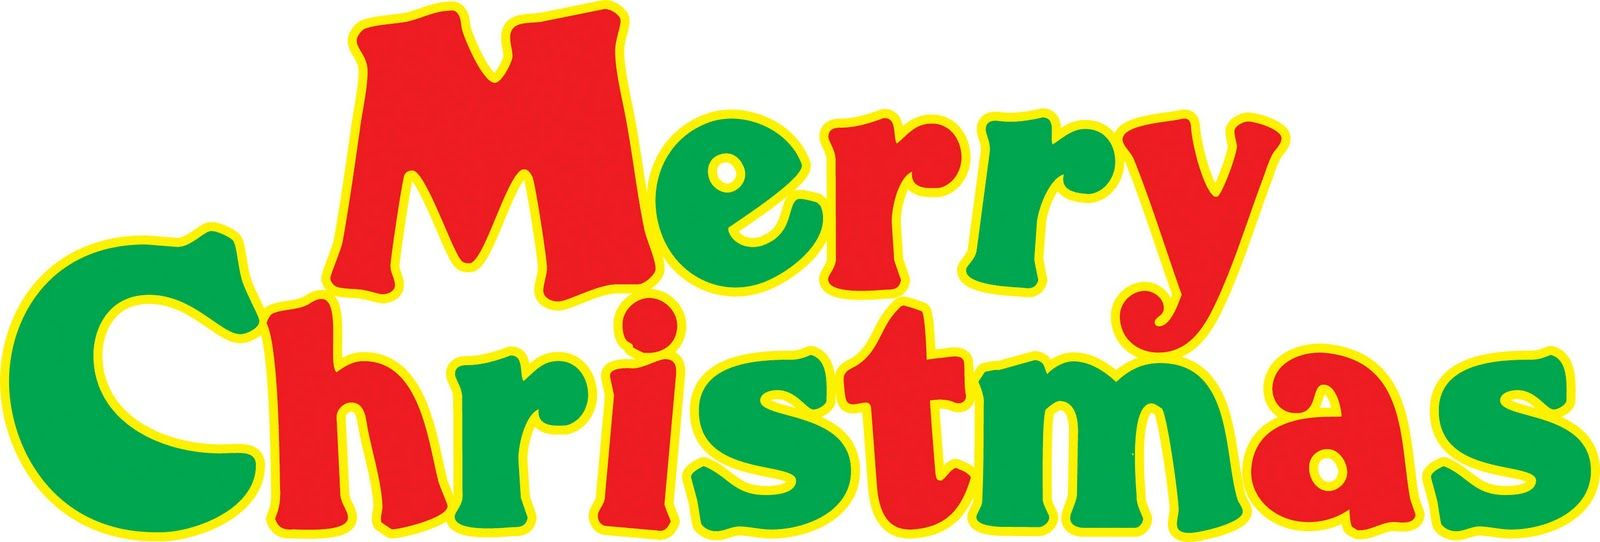 Merry Christmas Clip Art   Use these free images for your websites, art  projects, reports, and .